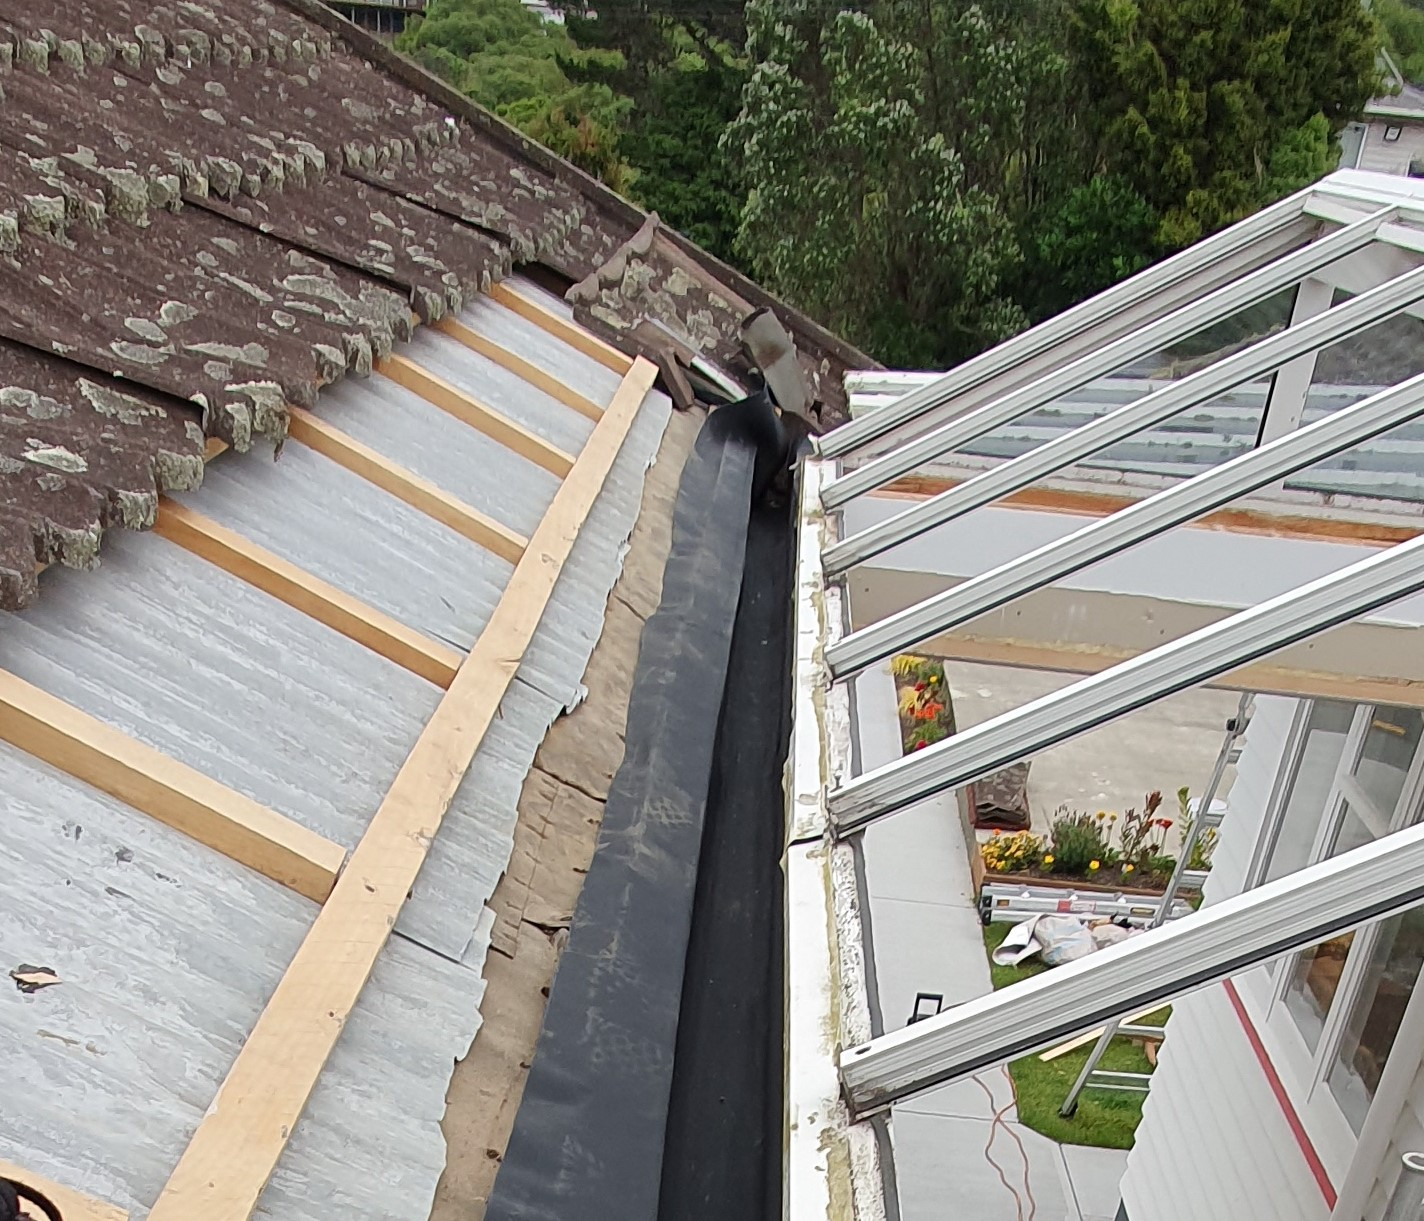 We can provide installation and repair services for rooftop waterproofing.